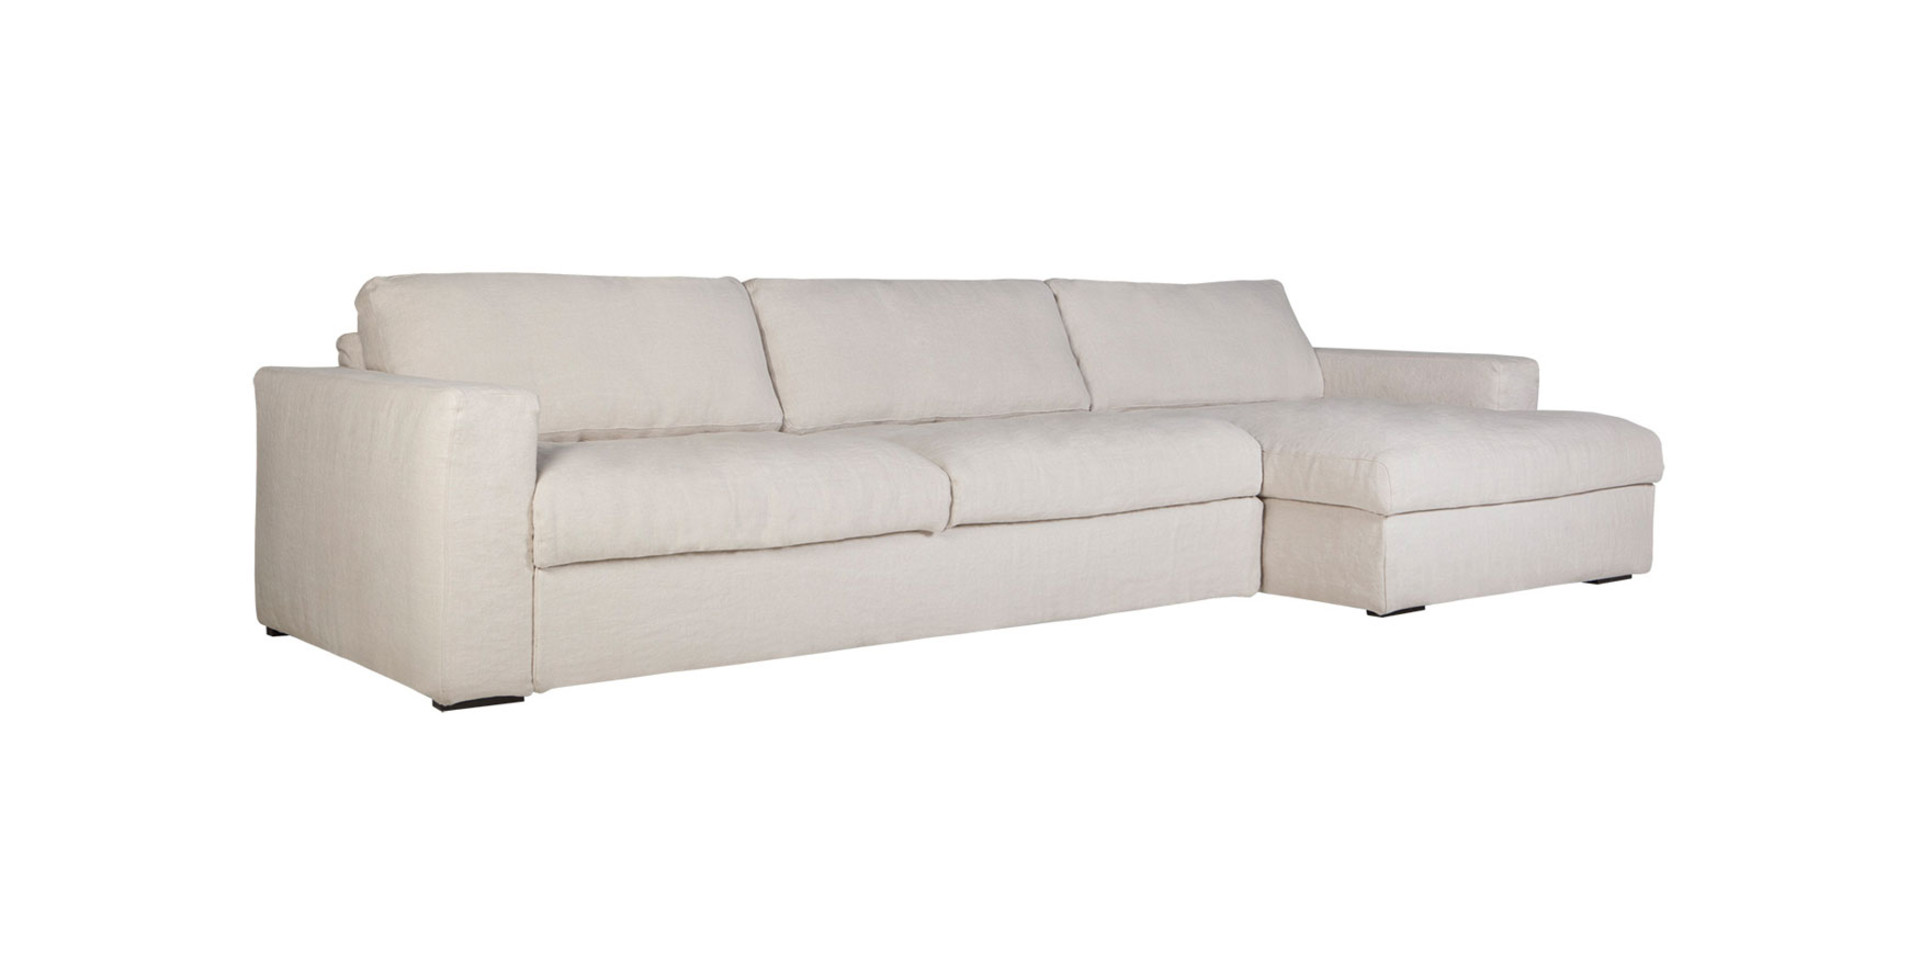 sits-linda-angle-chaiselongue93left_3seaterright_linen_natur_2